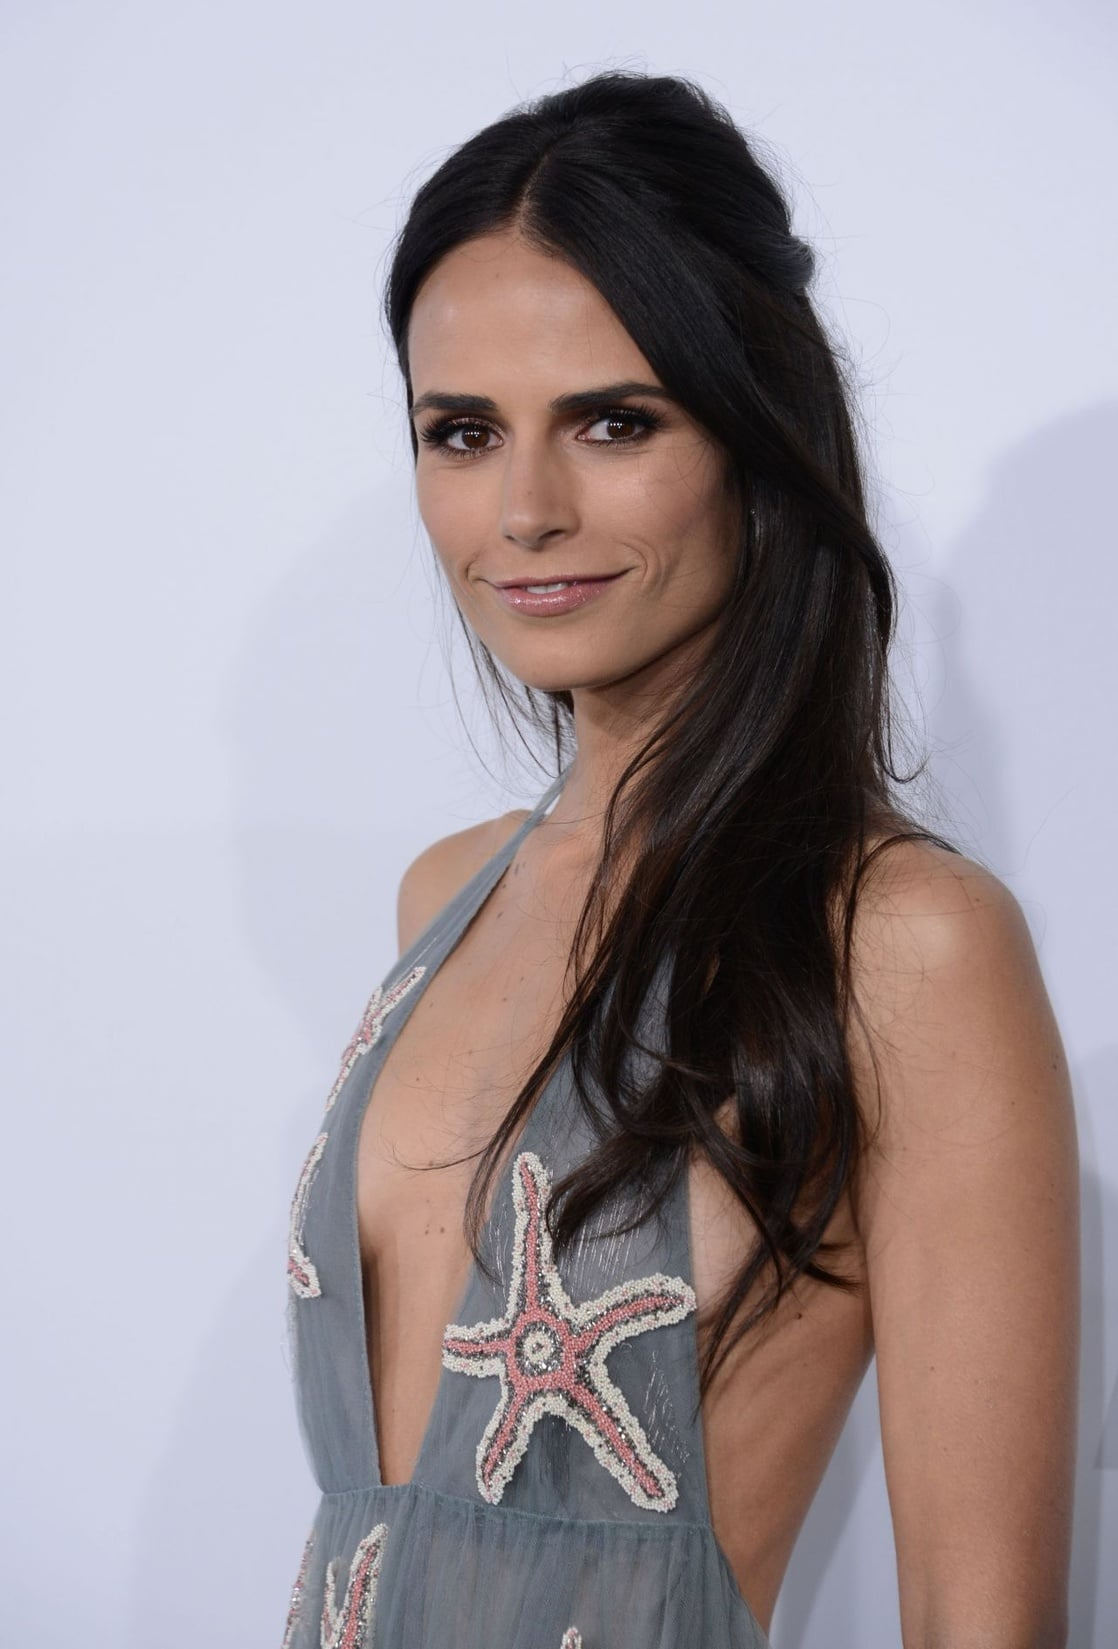 Cleavage Jordana Brewster naked (22 photos), Sexy, Bikini, Feet, braless 2019